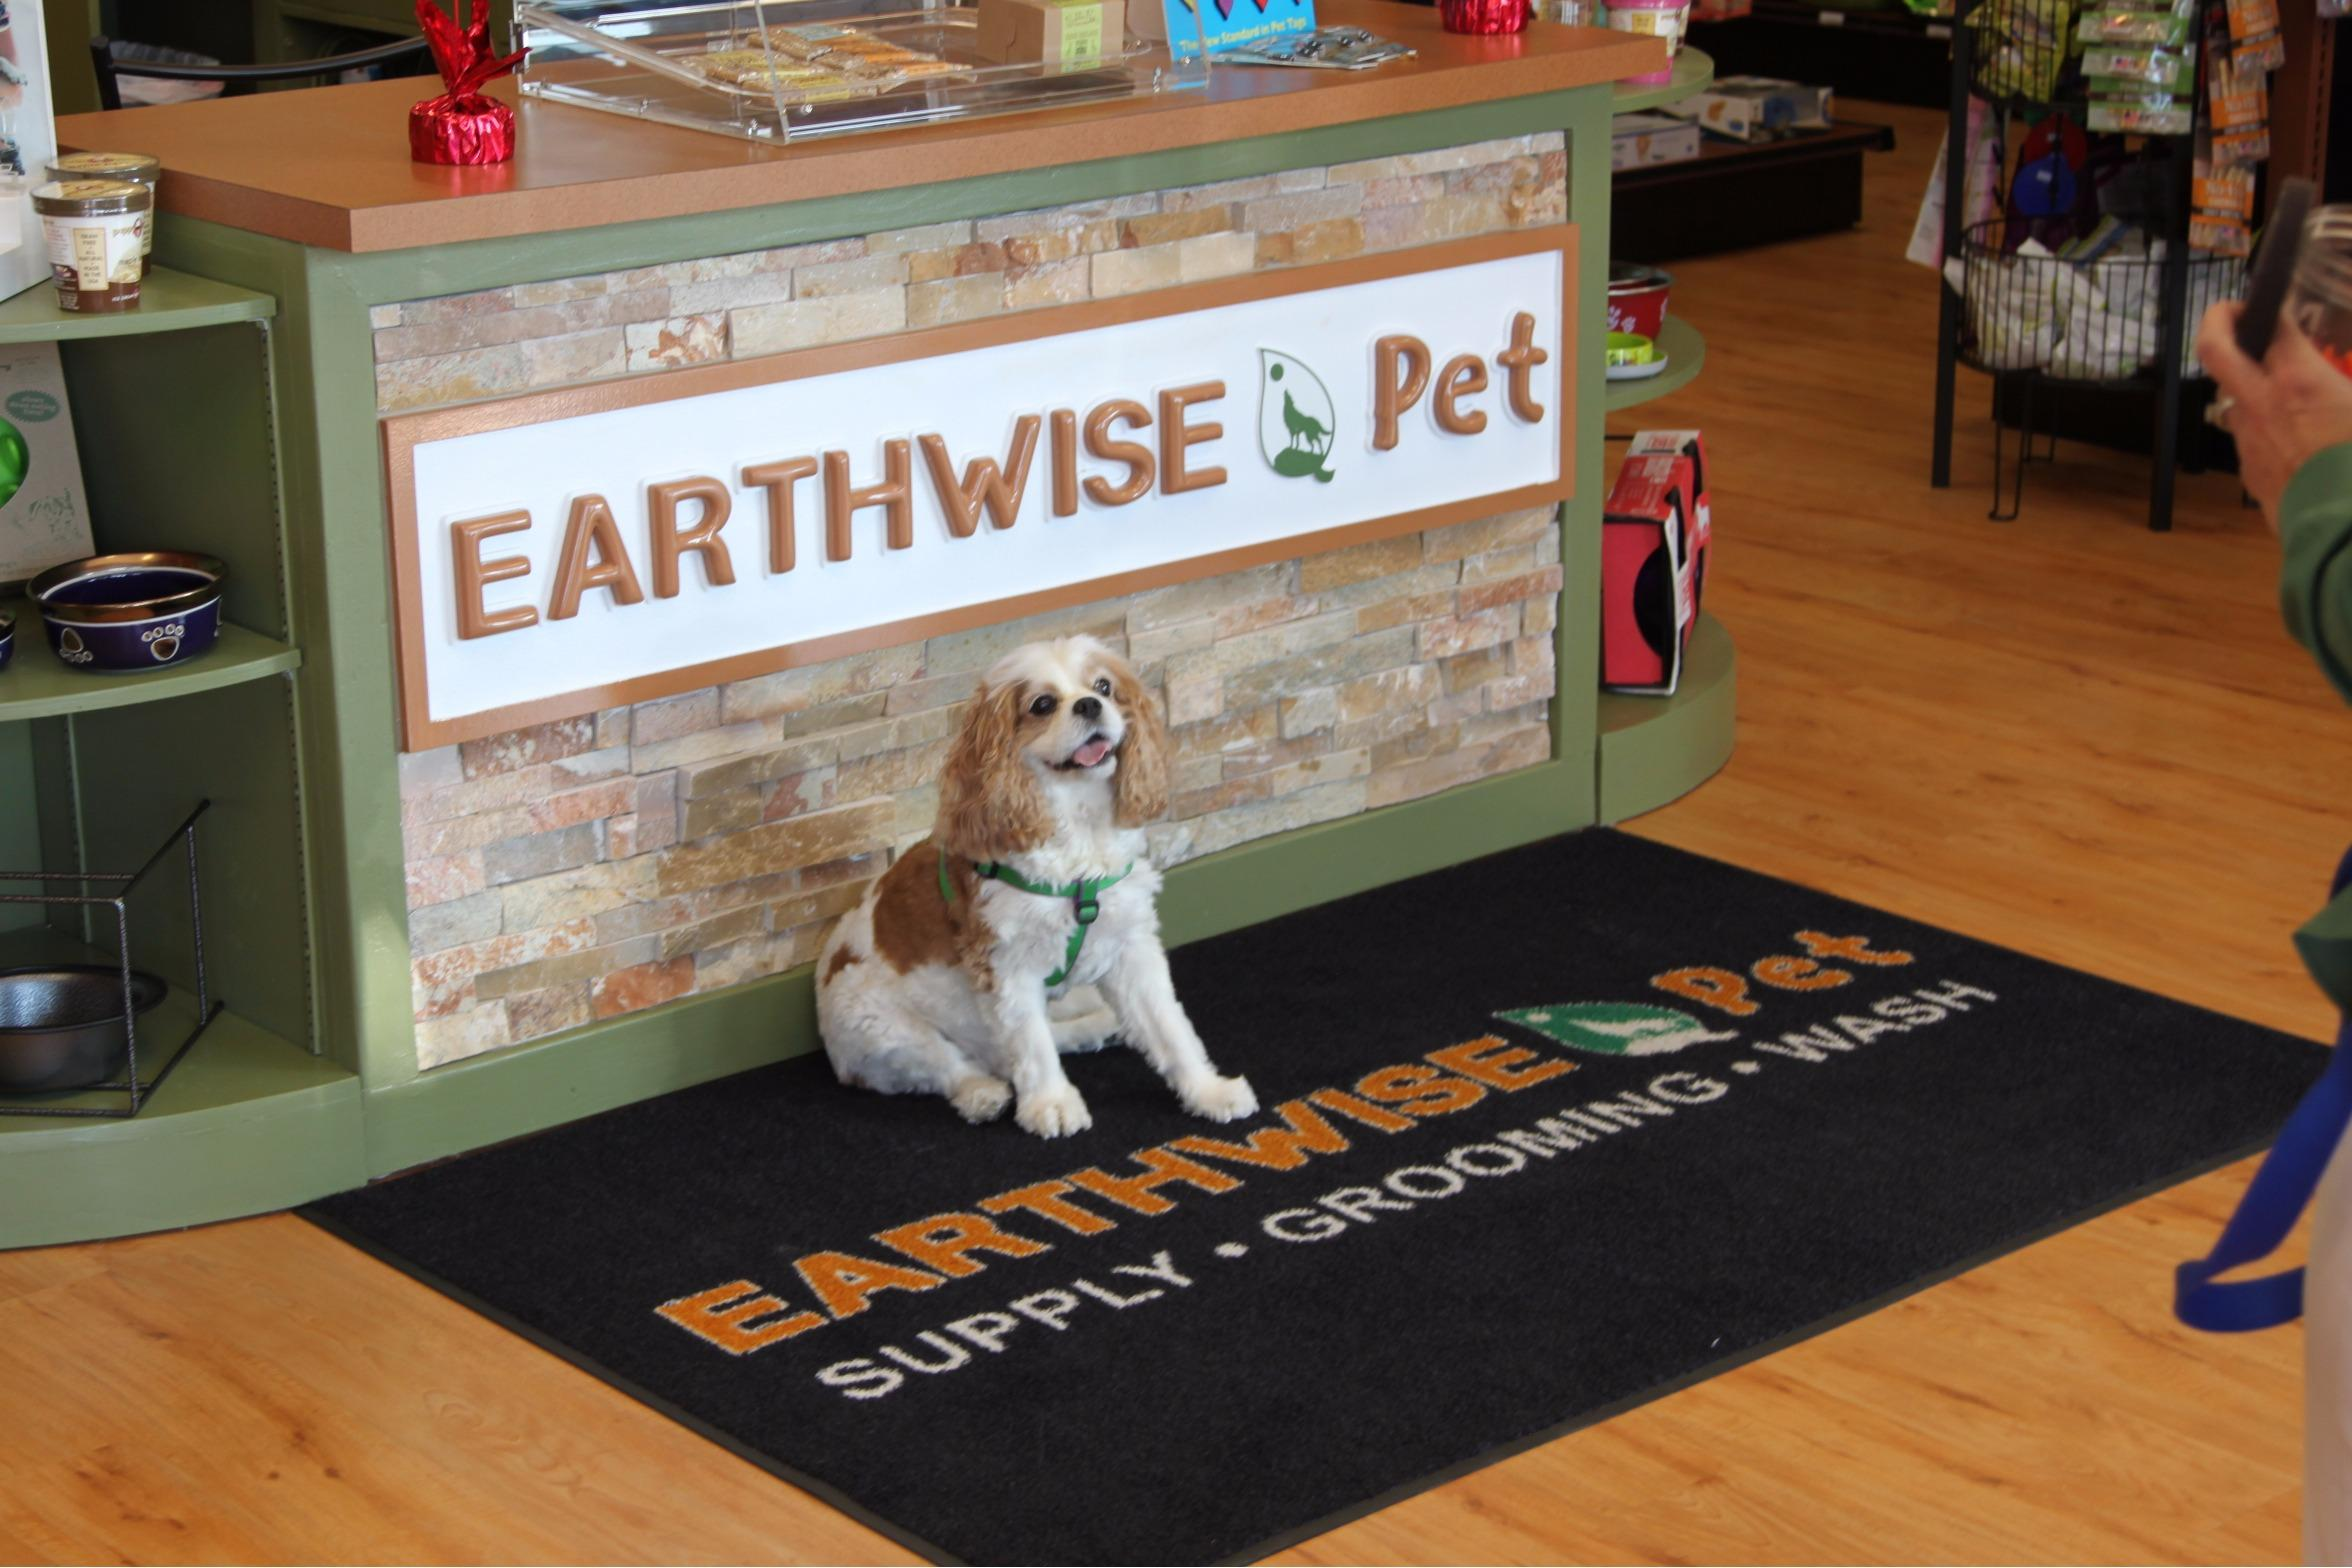 EarthWise Pet/ Turnersville image 3